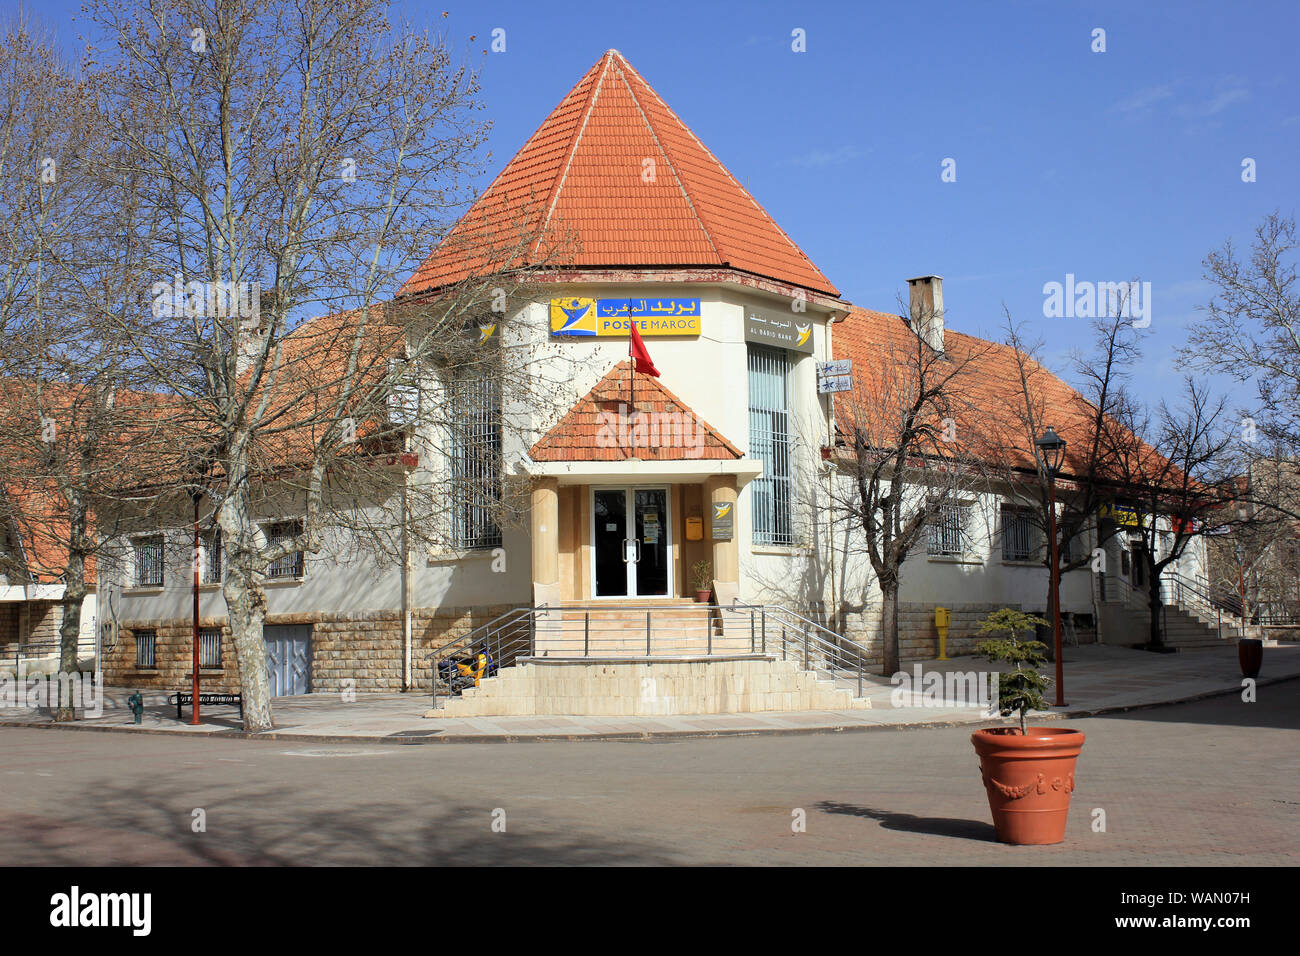 Poste Maroc Building, Ifrane, Morocco Stock Photo